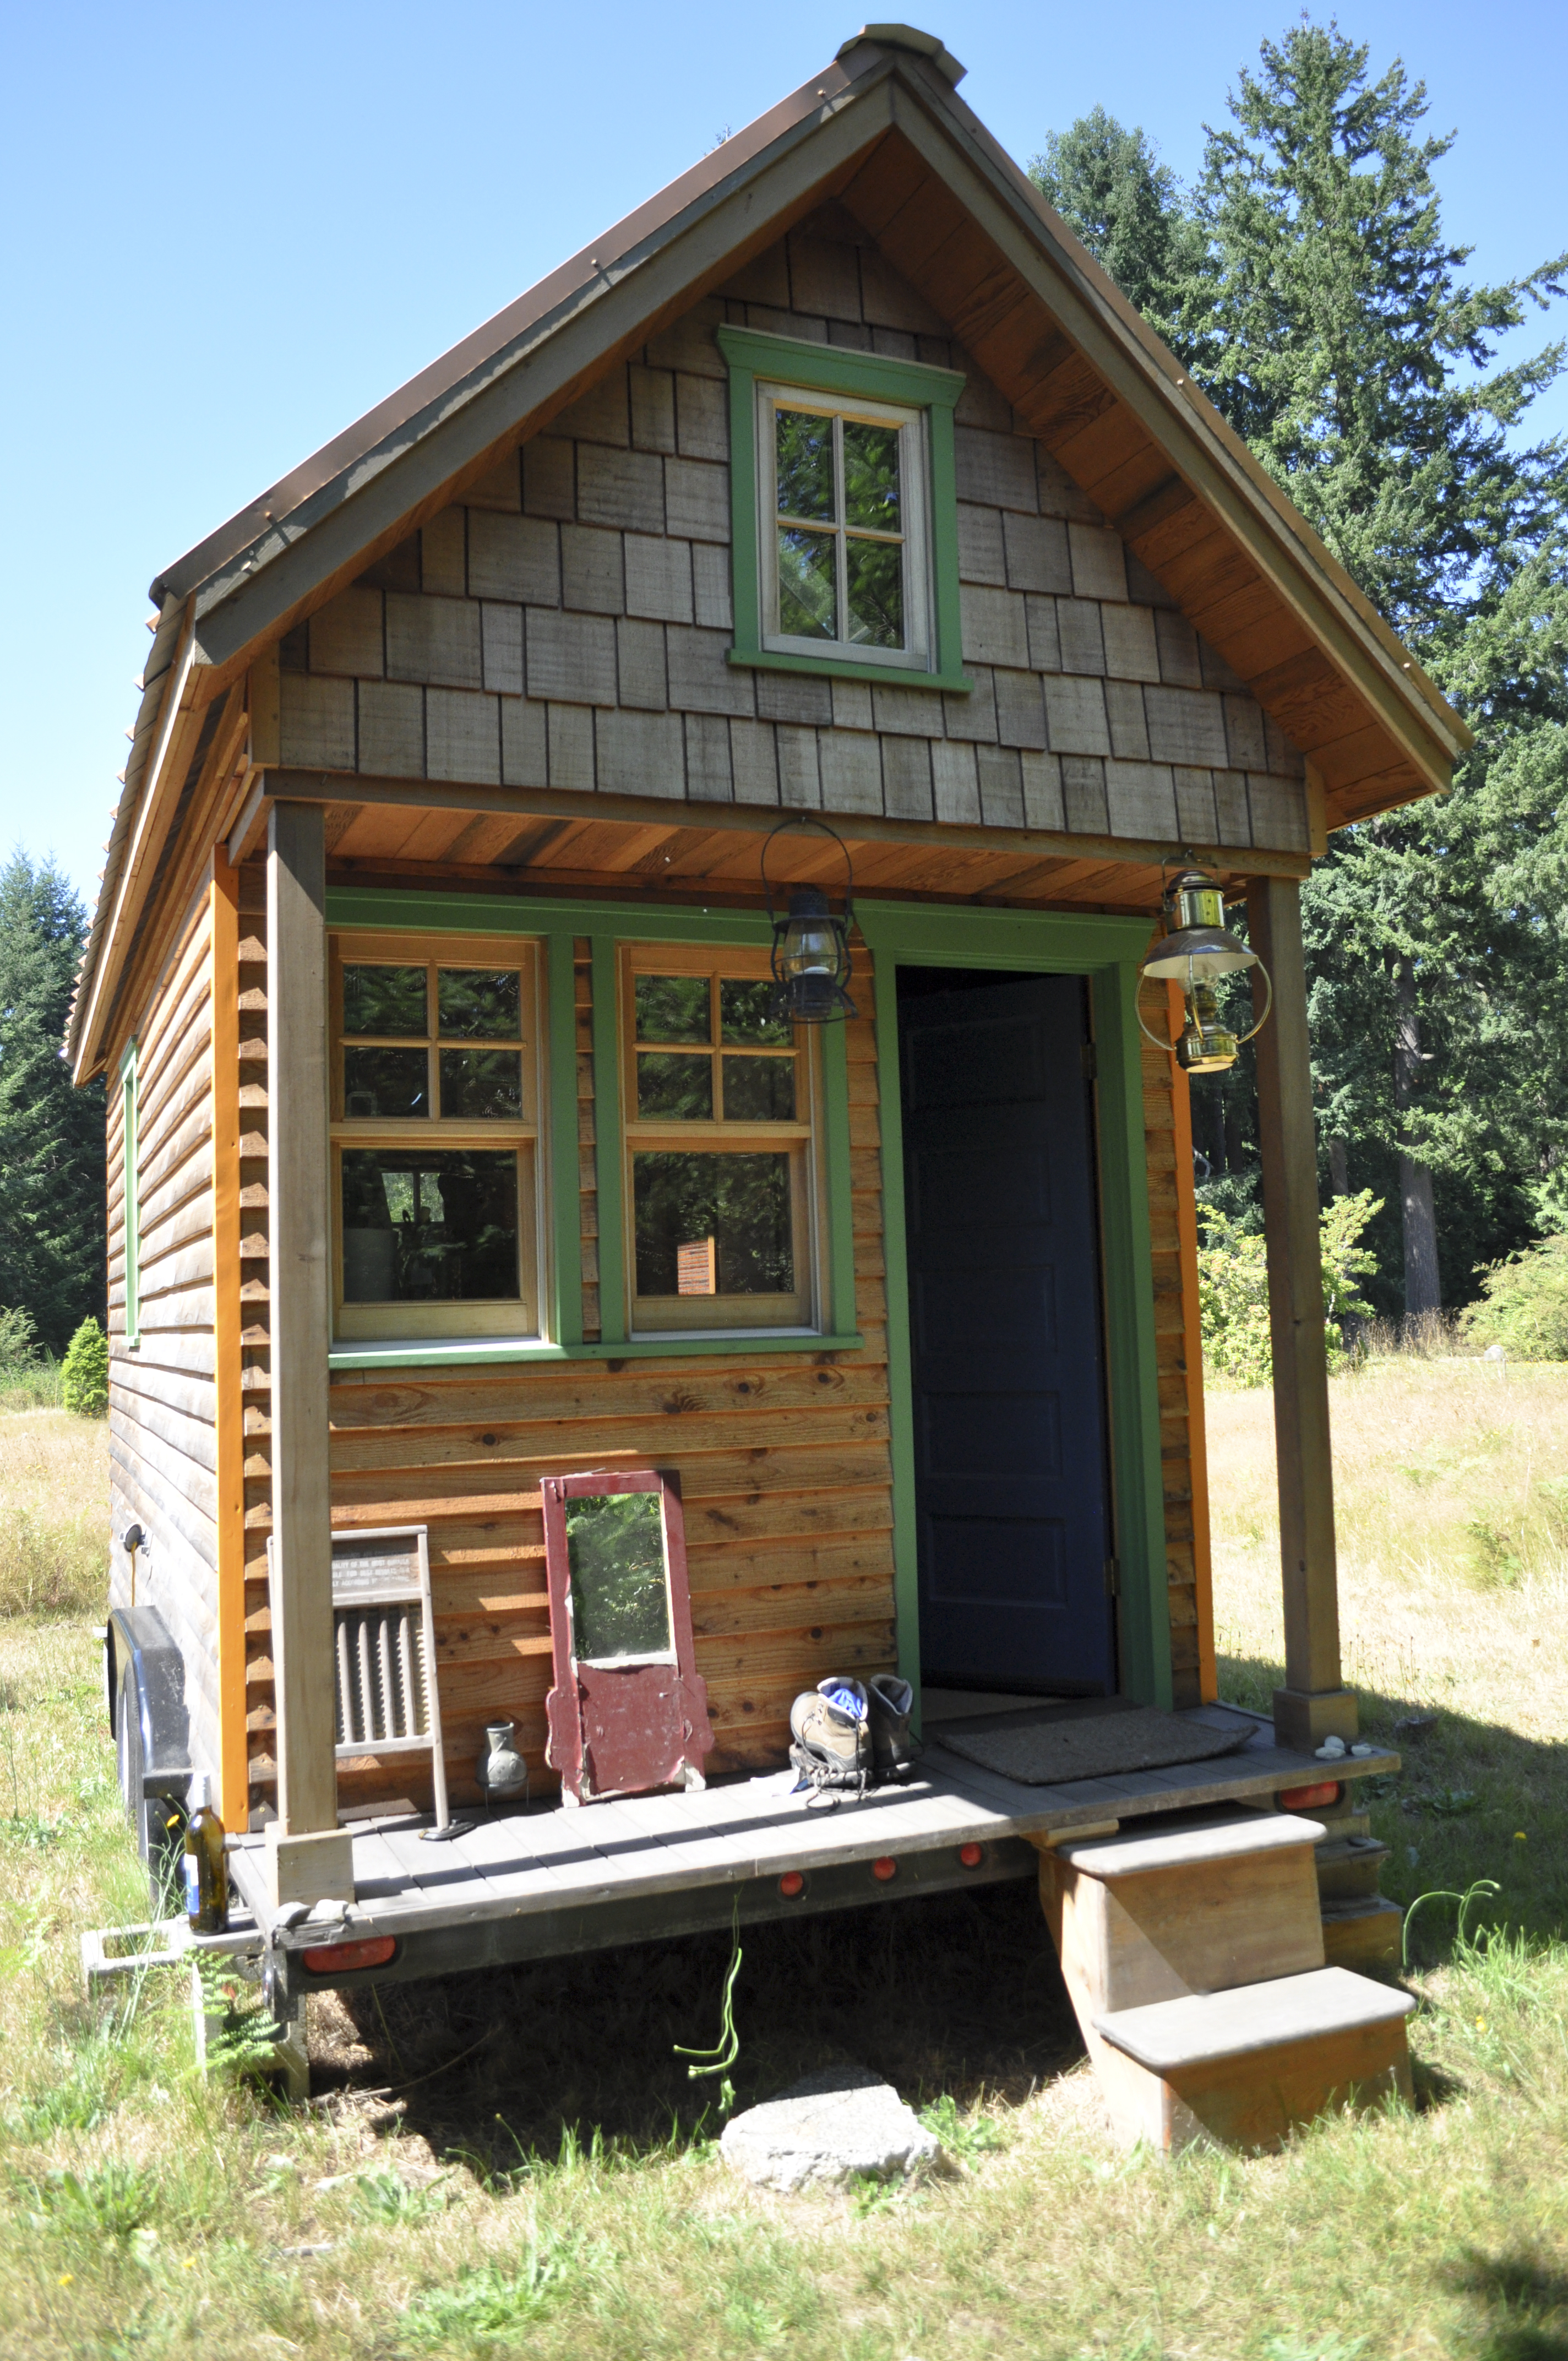 Enjoyable Tiny House Movement Wikiwand Largest Home Design Picture Inspirations Pitcheantrous